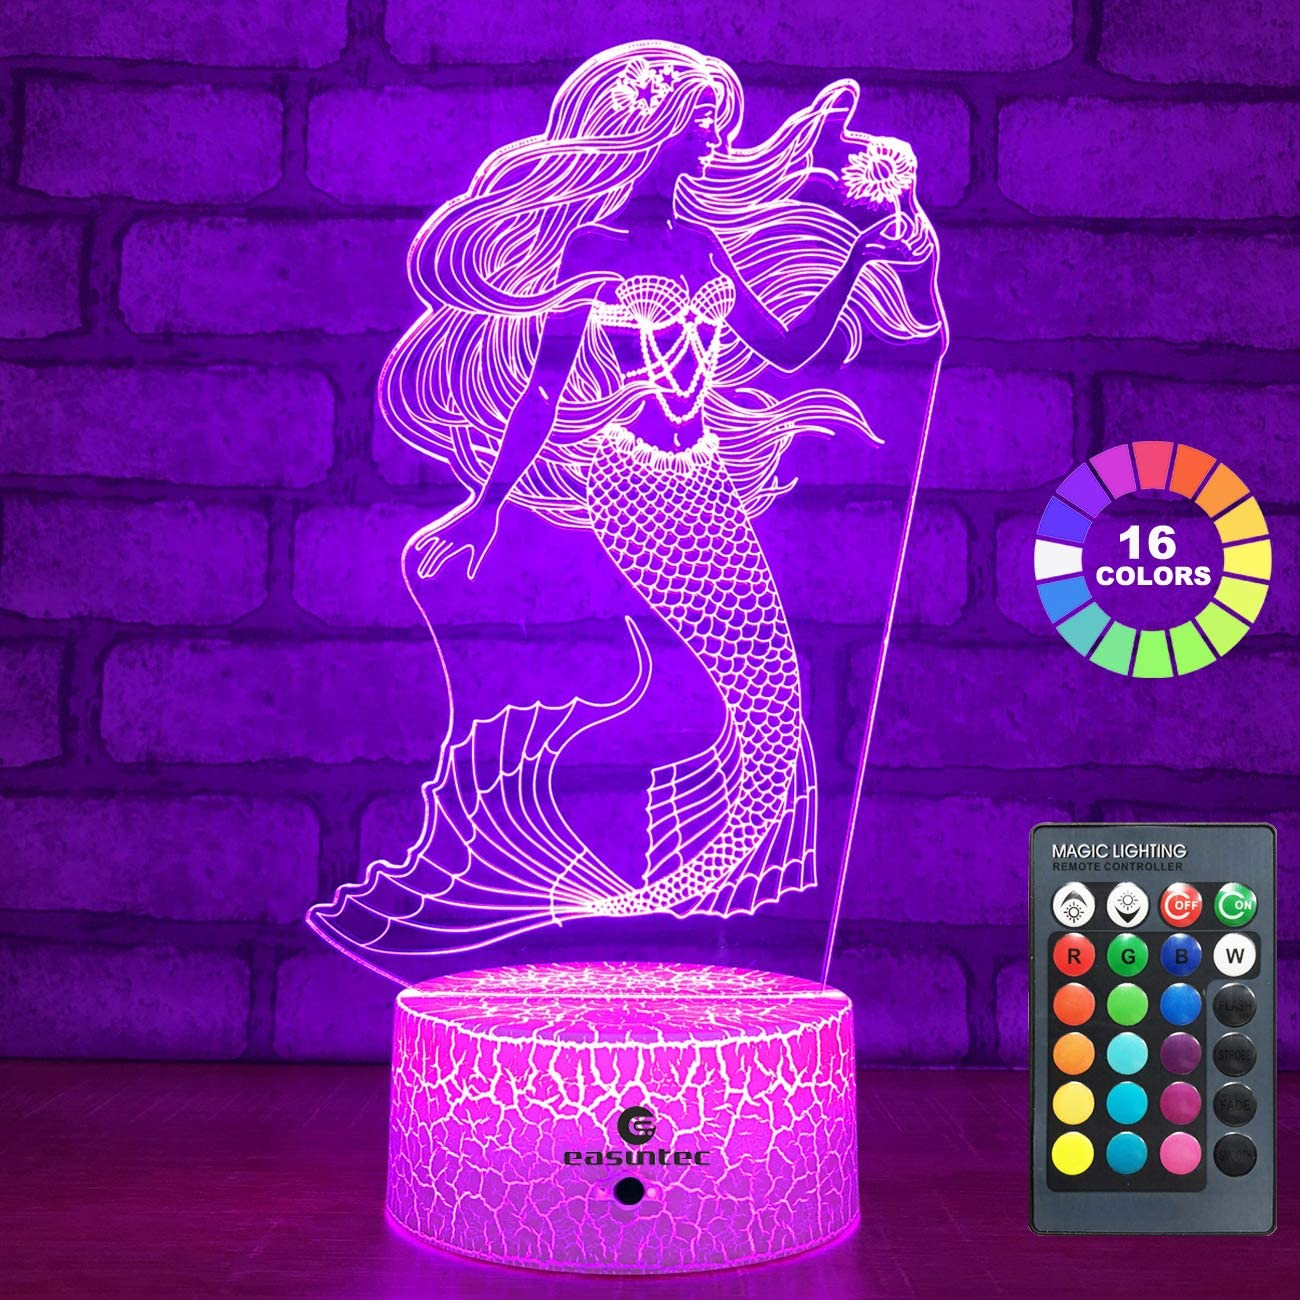 easuntec Mermaid Toys Night Light with Remote & Smart Touch 7 Colors + 16 Colors Changing Dimmable Mermaid Gifts 1 2 3 4 5 6 7 8 Year Old Girl Gifts (Mermaid 16WT)